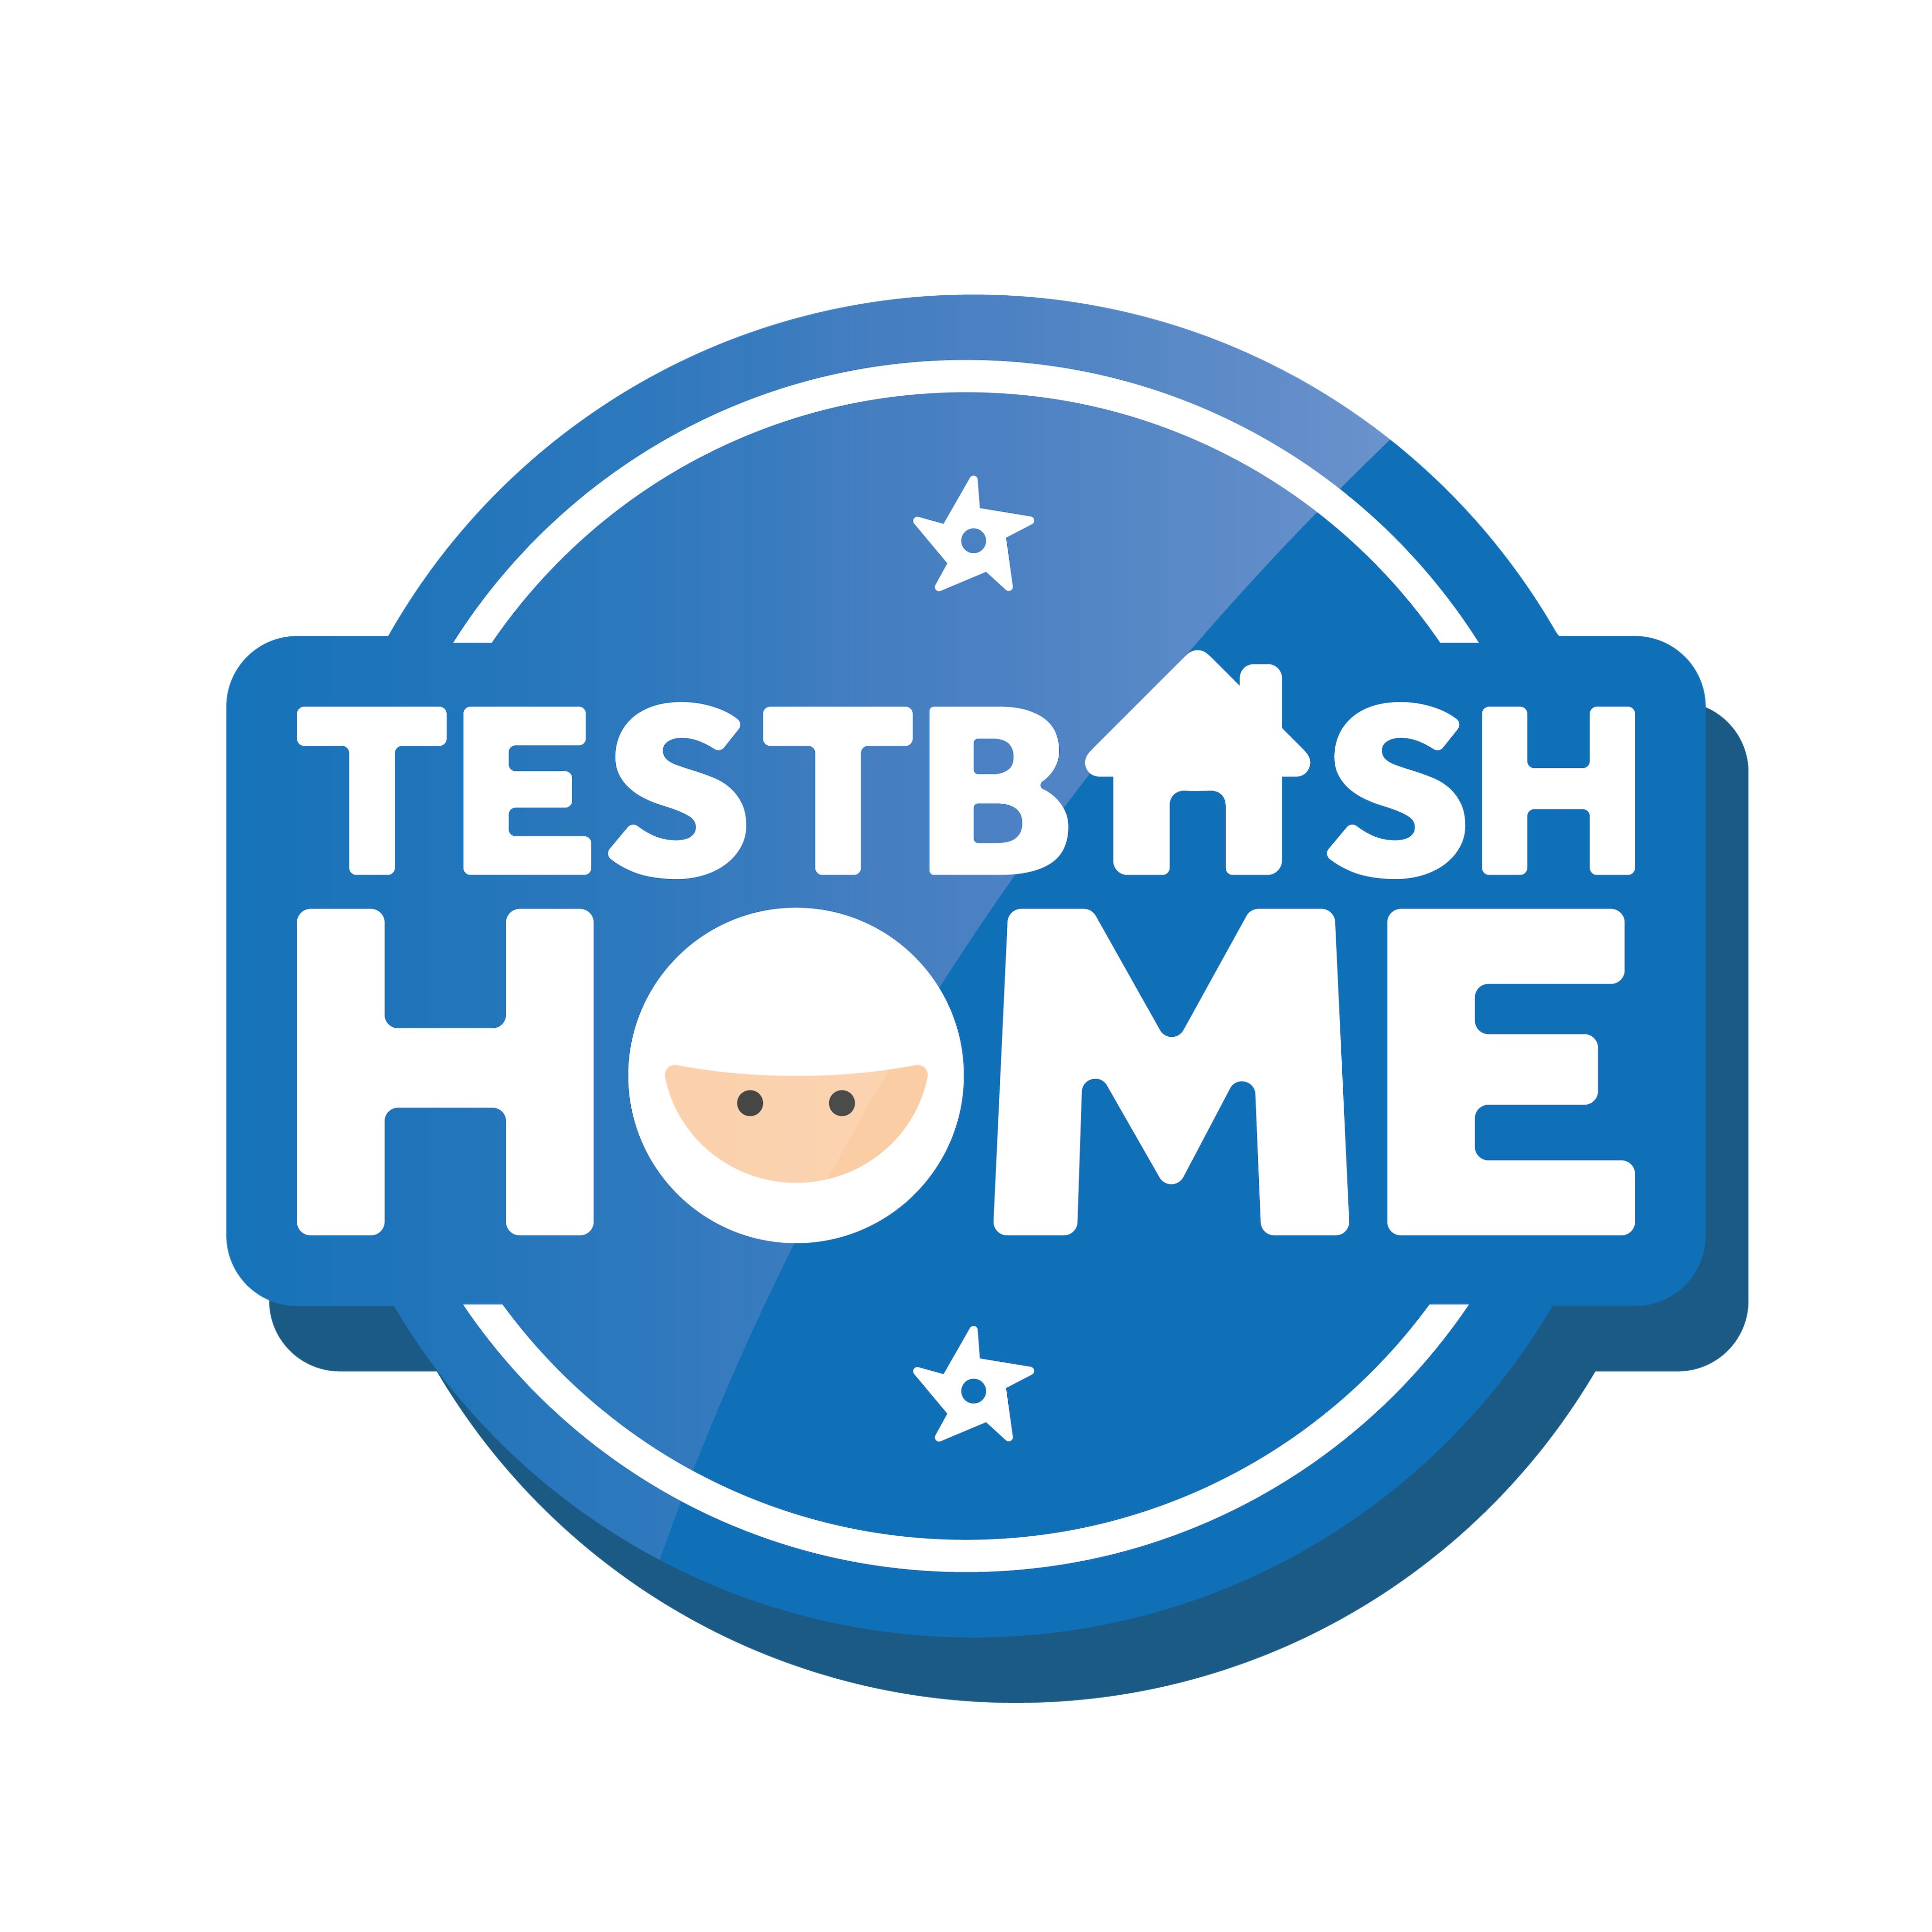 TestBash Home 2020 logo